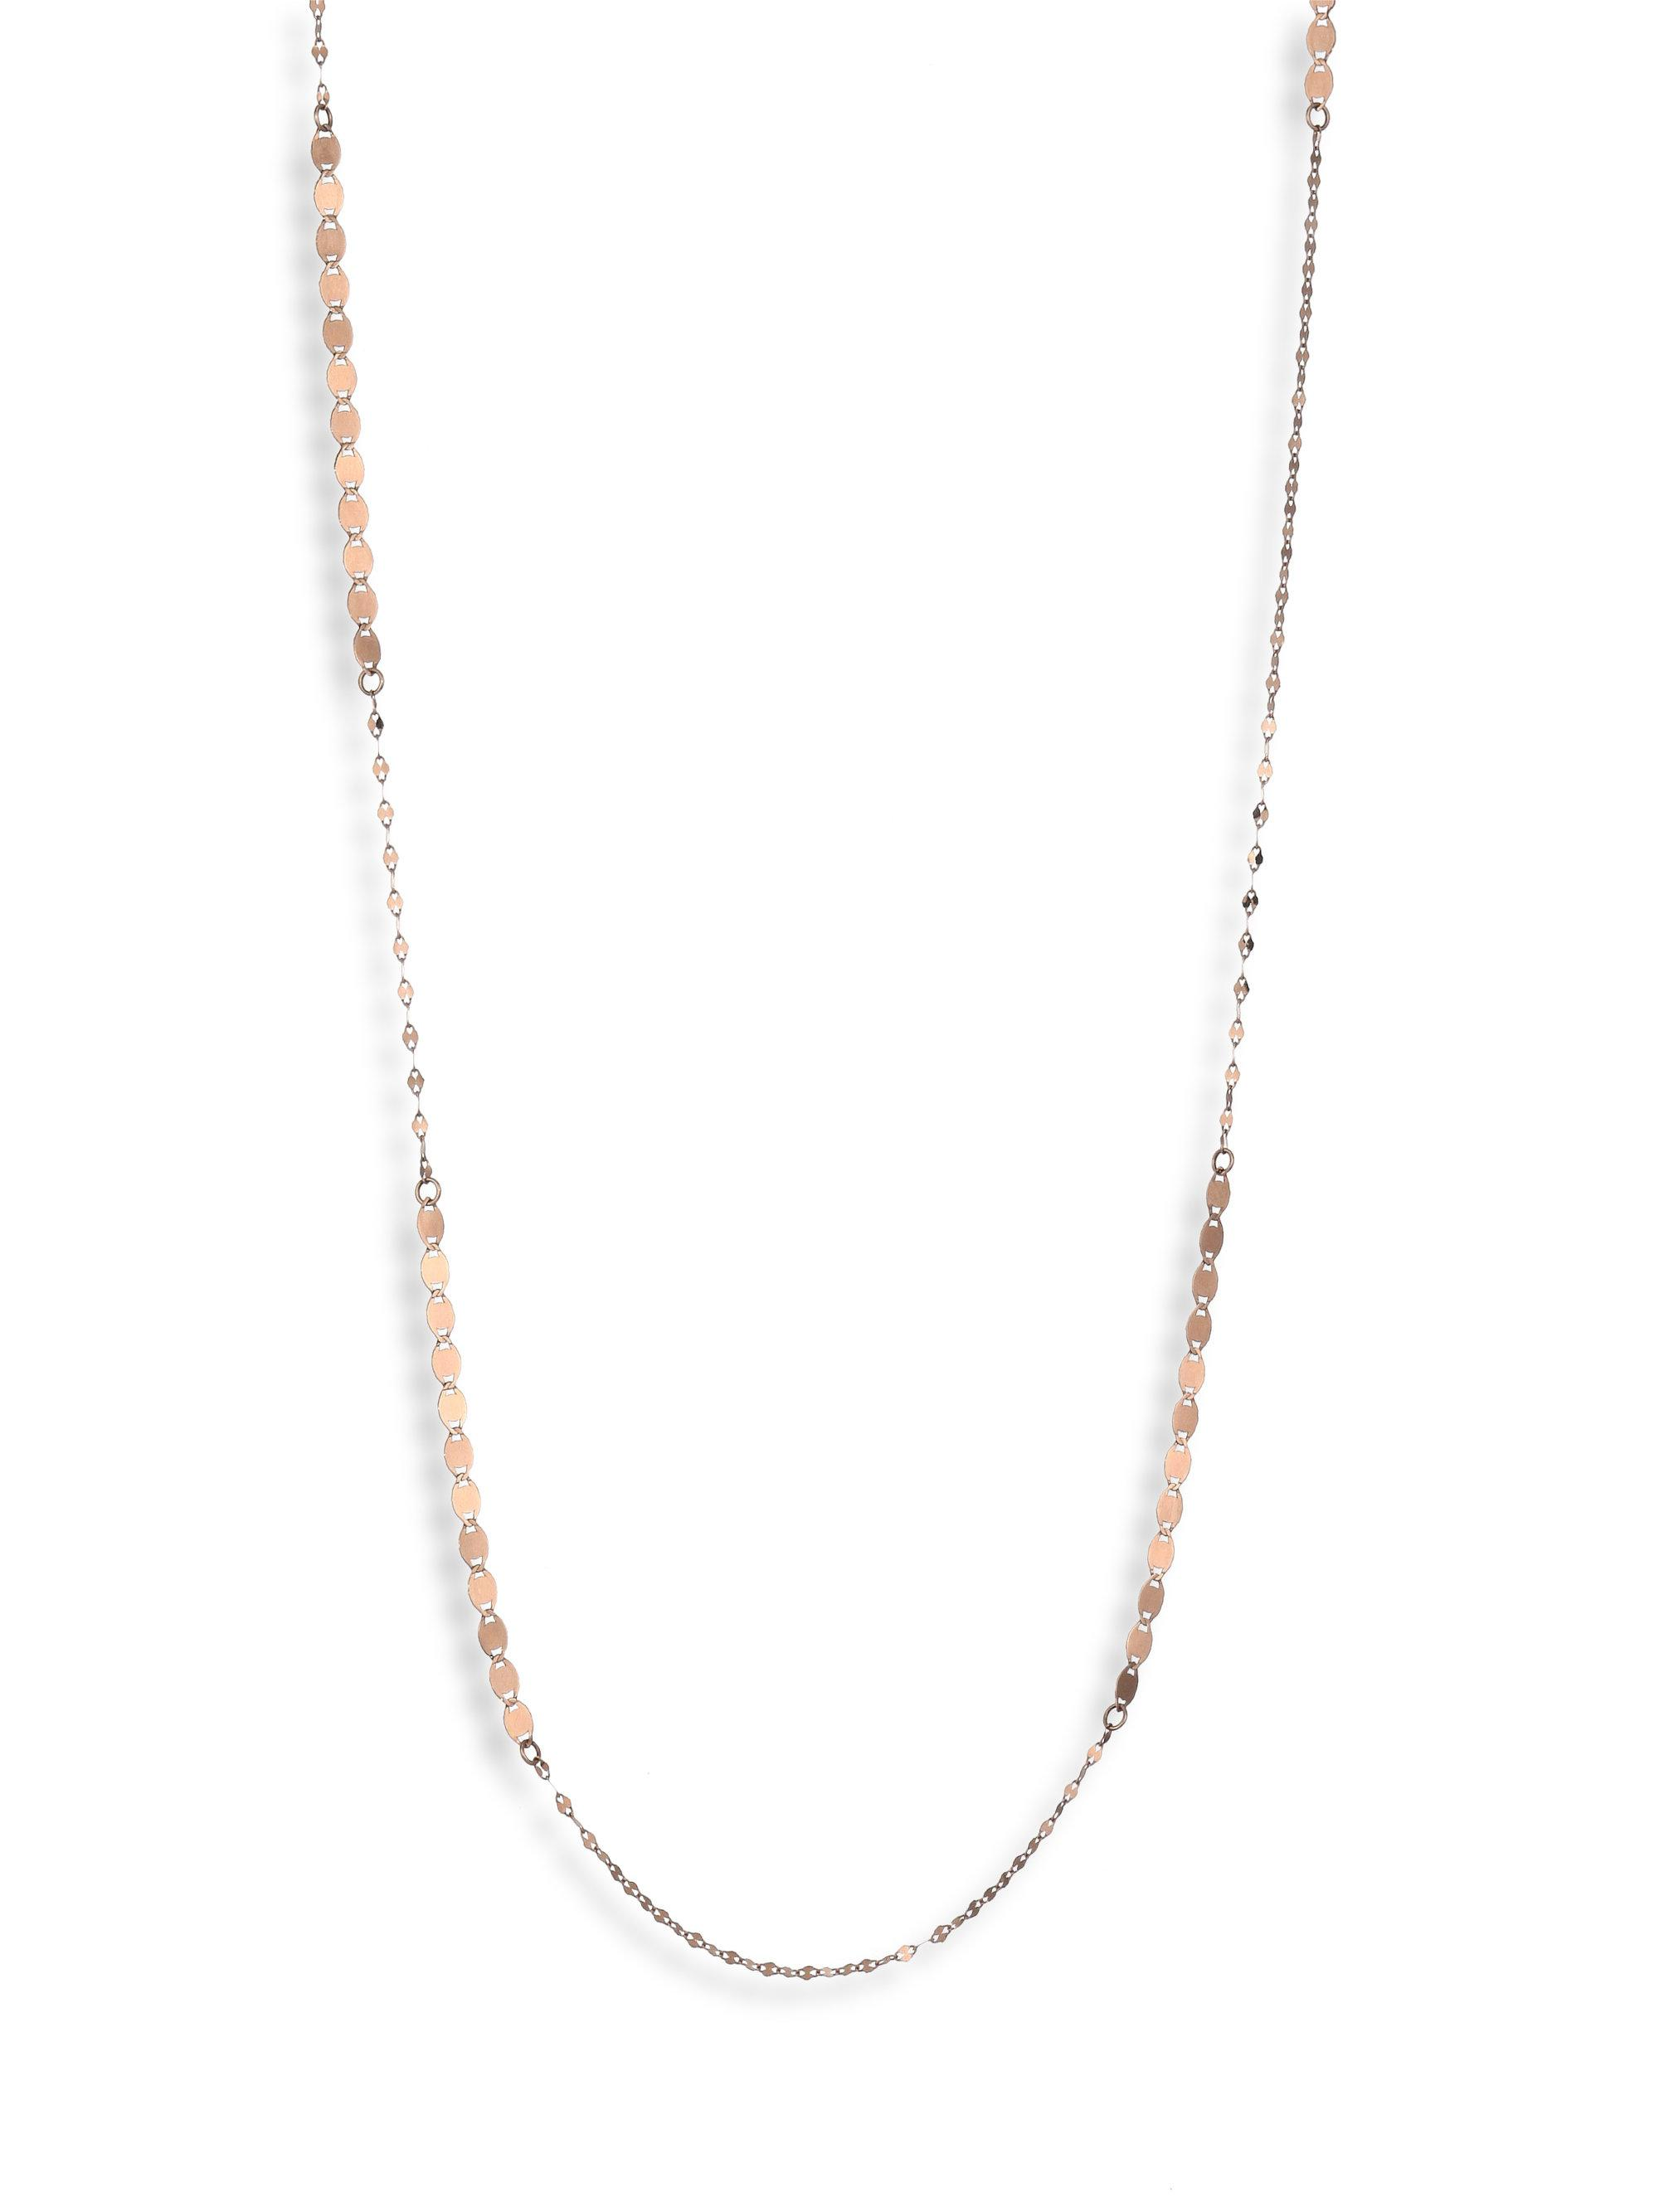 Lana Jewelry Nude Remix Layering Necklace 3gIugoWBSF